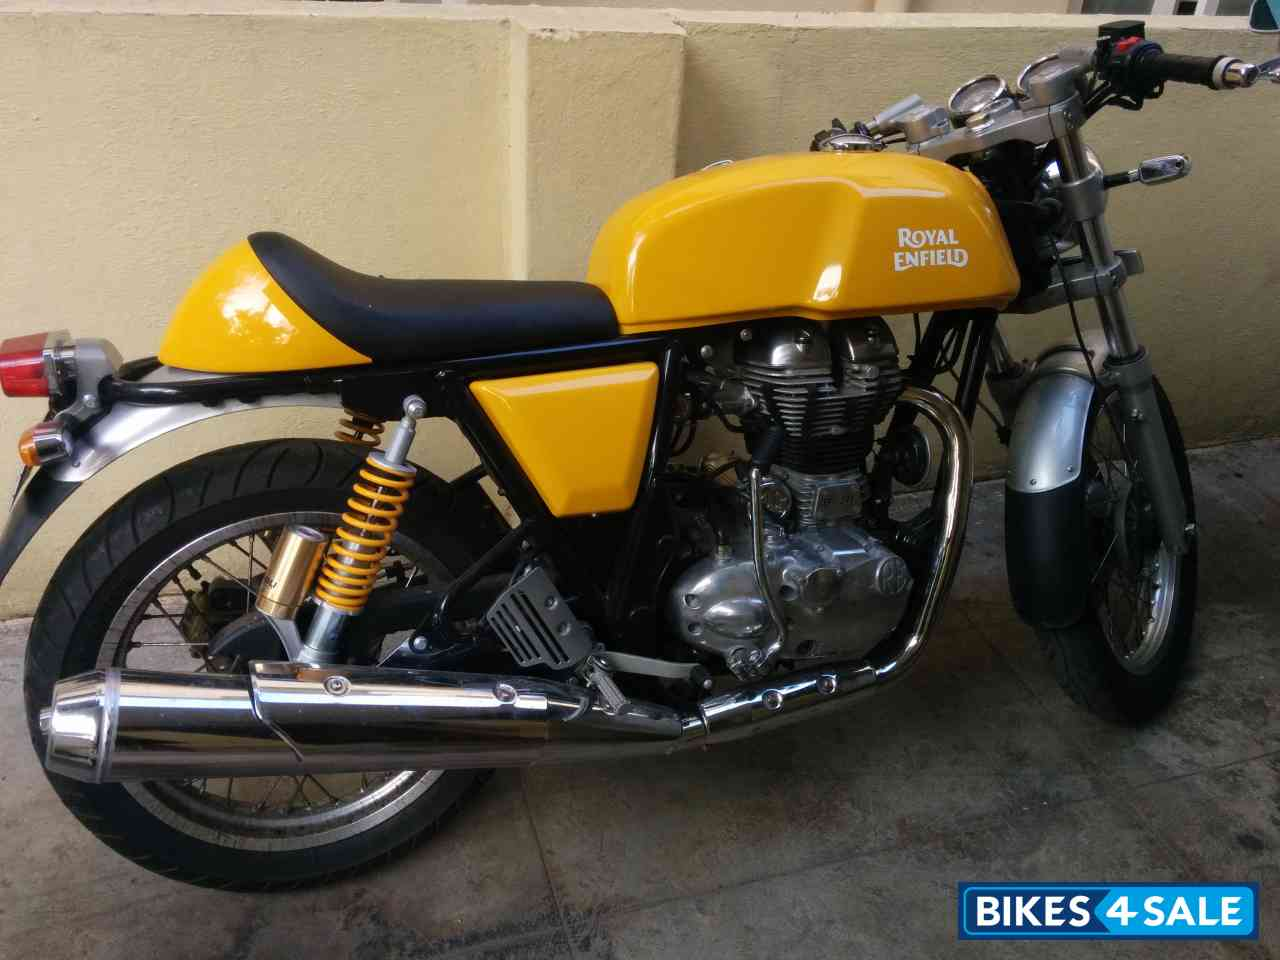 used 2014 model royal enfield continental gt 535 for sale in bangalore id 118603 yellow colour. Black Bedroom Furniture Sets. Home Design Ideas